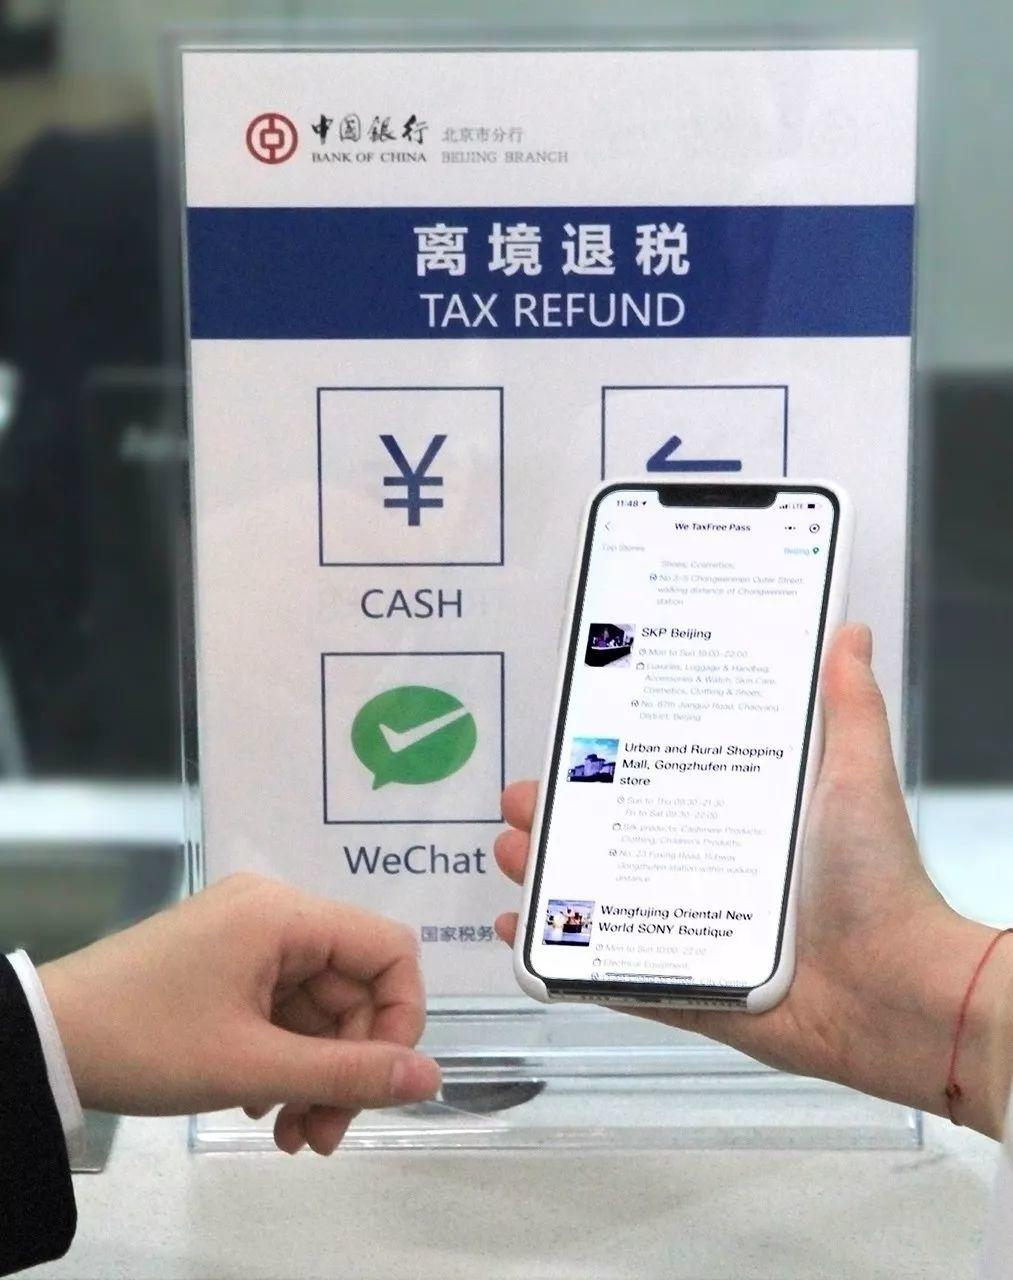 WeChat's Real-Time Tax Refunds Service! Check The Full Guide!